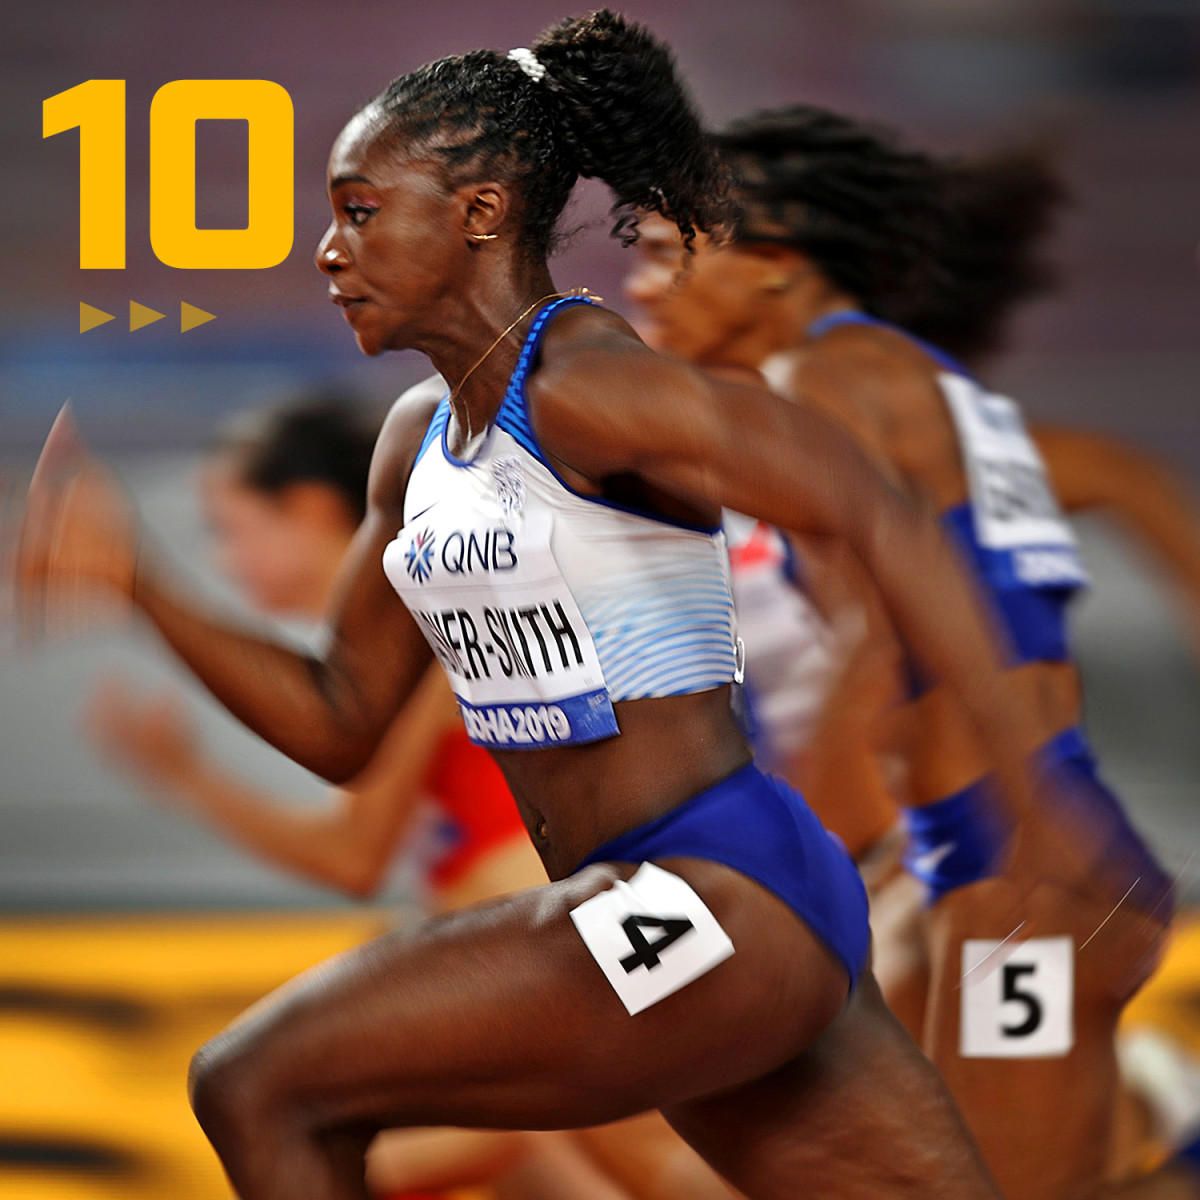 Dina_Asher_Smith_01_GRAPHIC_F10